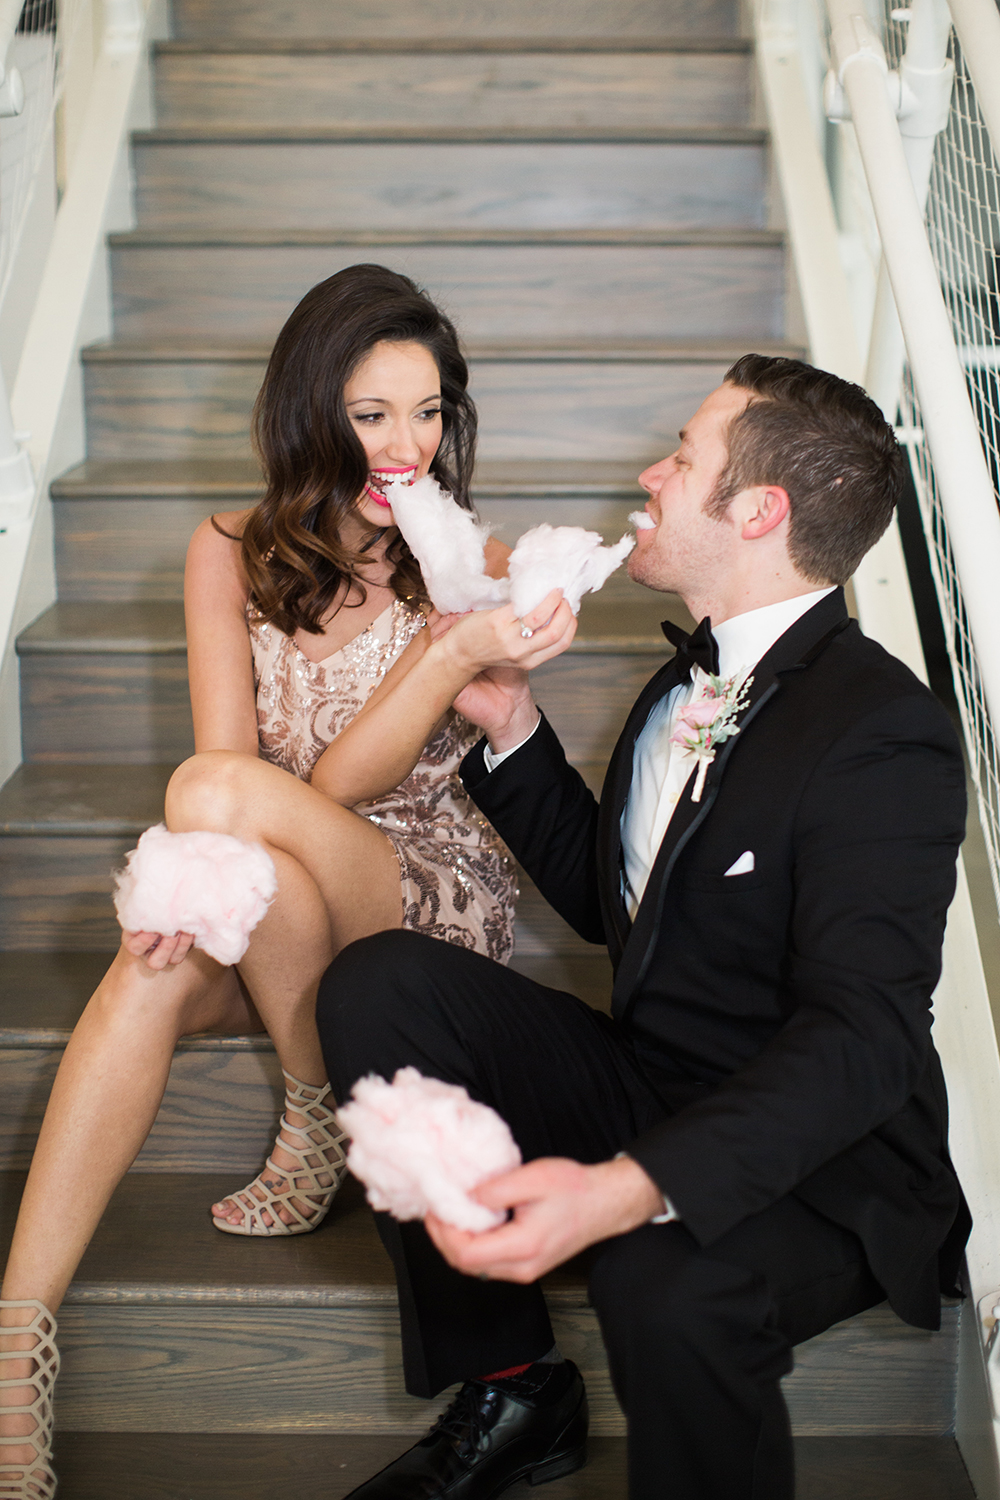 cotton candy weddings - photo by Erin Stubblefield http://ruffledblog.com/chic-city-valentines-day-wedding-inspiration